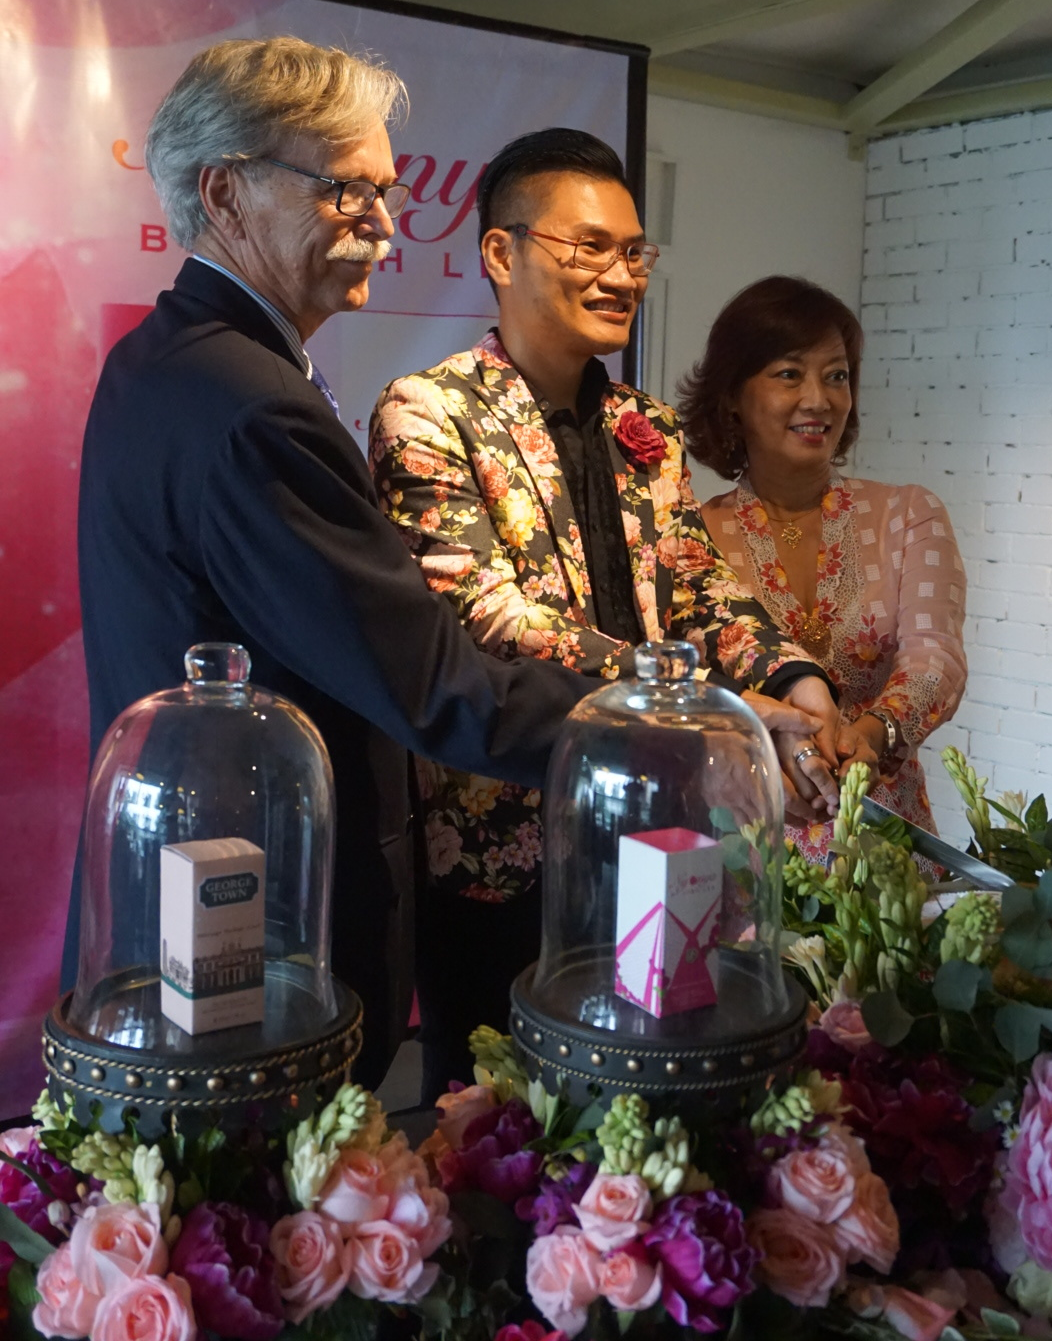 Josh flanked by Mr Jean-Pierre Galland and Dr. Lee Su Kim at the Nyonya launch.